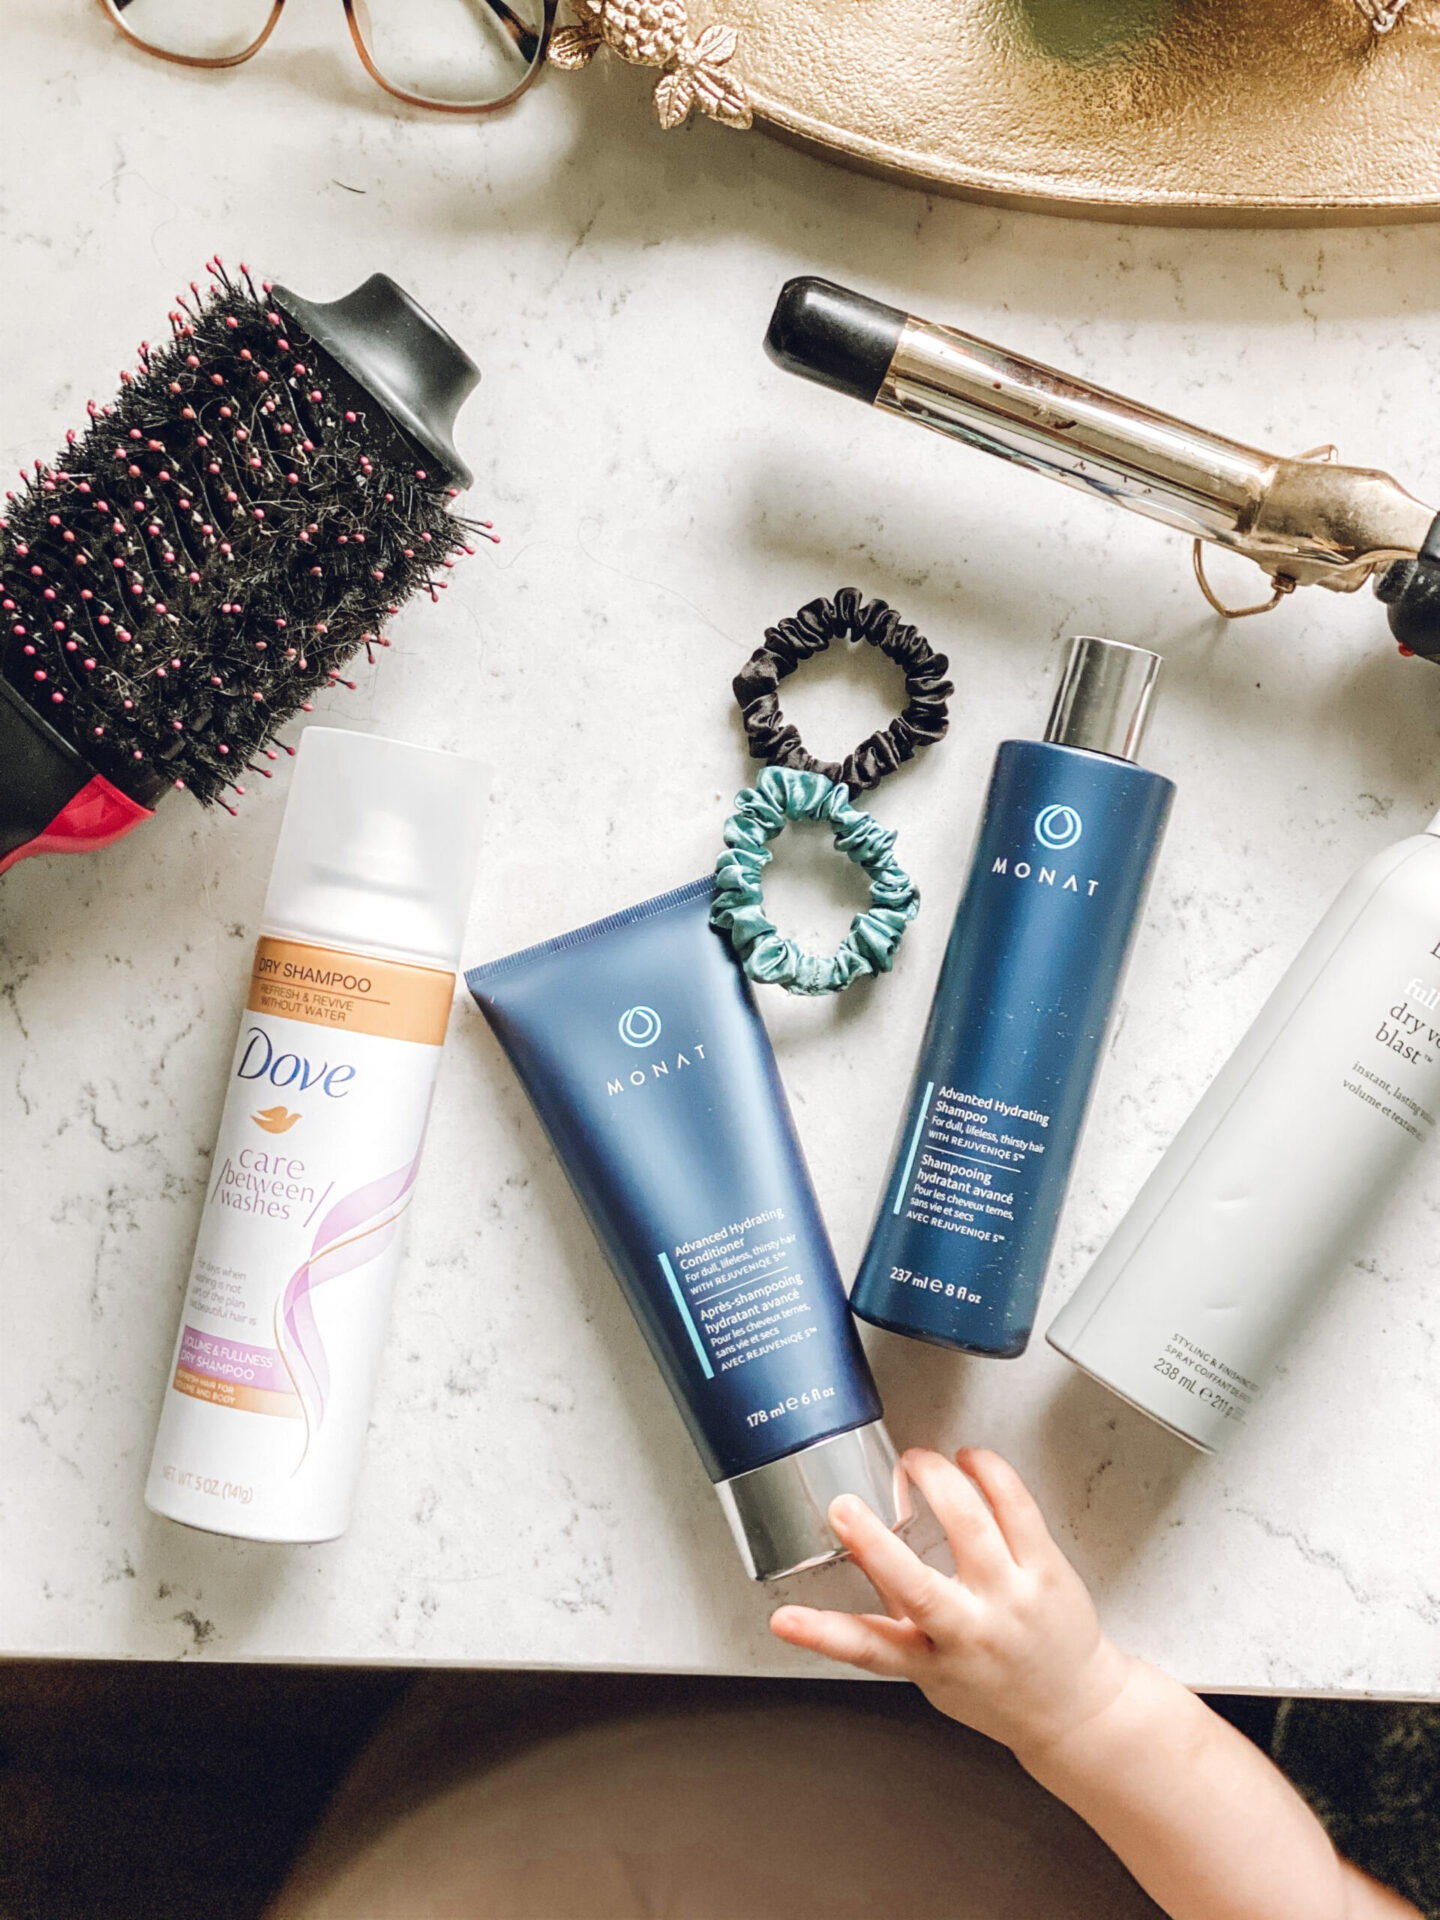 Hair routine with monat hair products